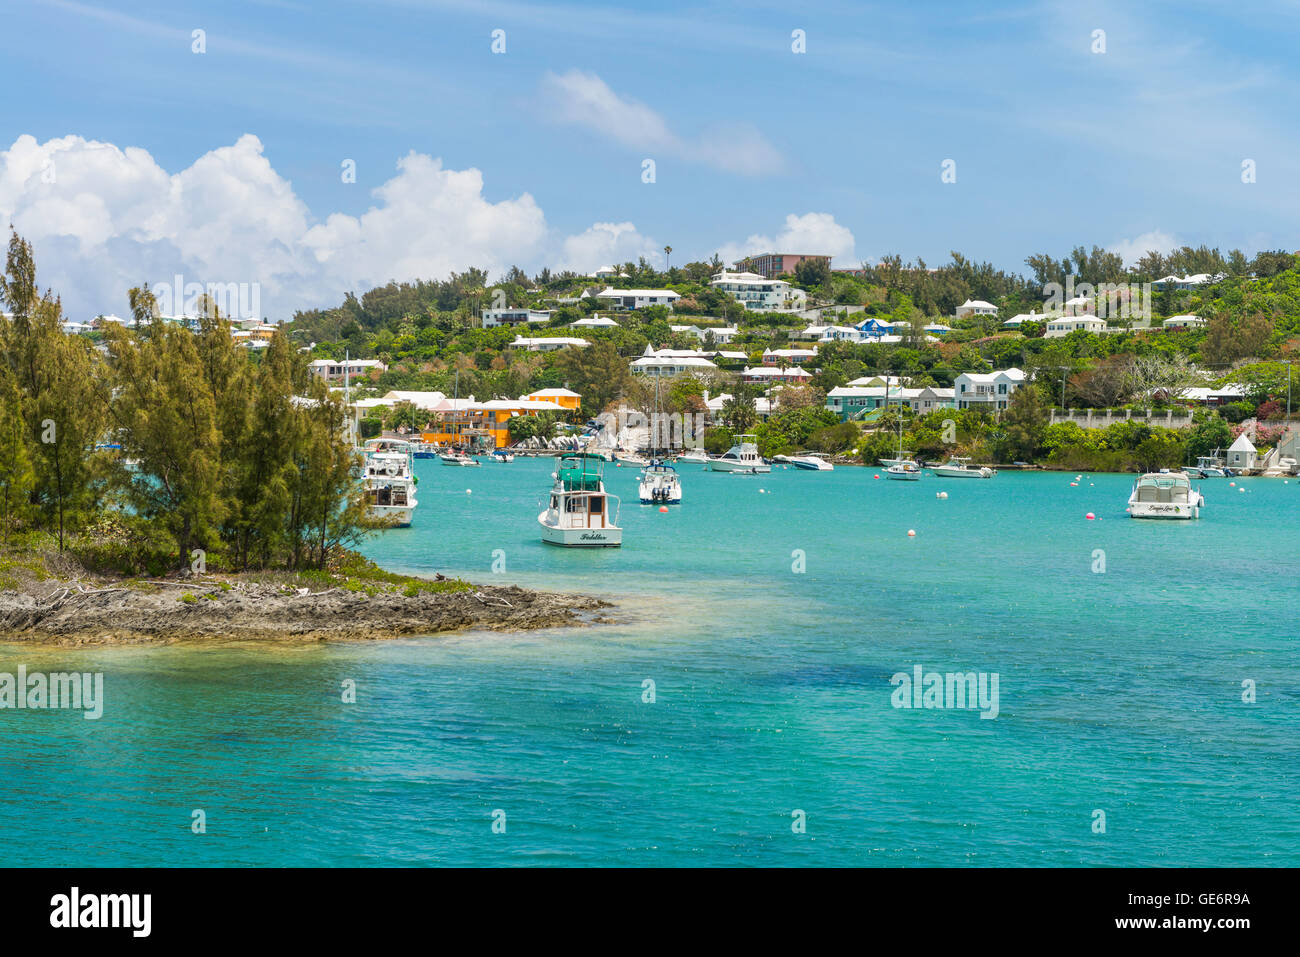 Entrance to Jew's Bay, Bermuda, with the Fairmont Southampton luxury resort visible at the top of the hill. Stock Photo